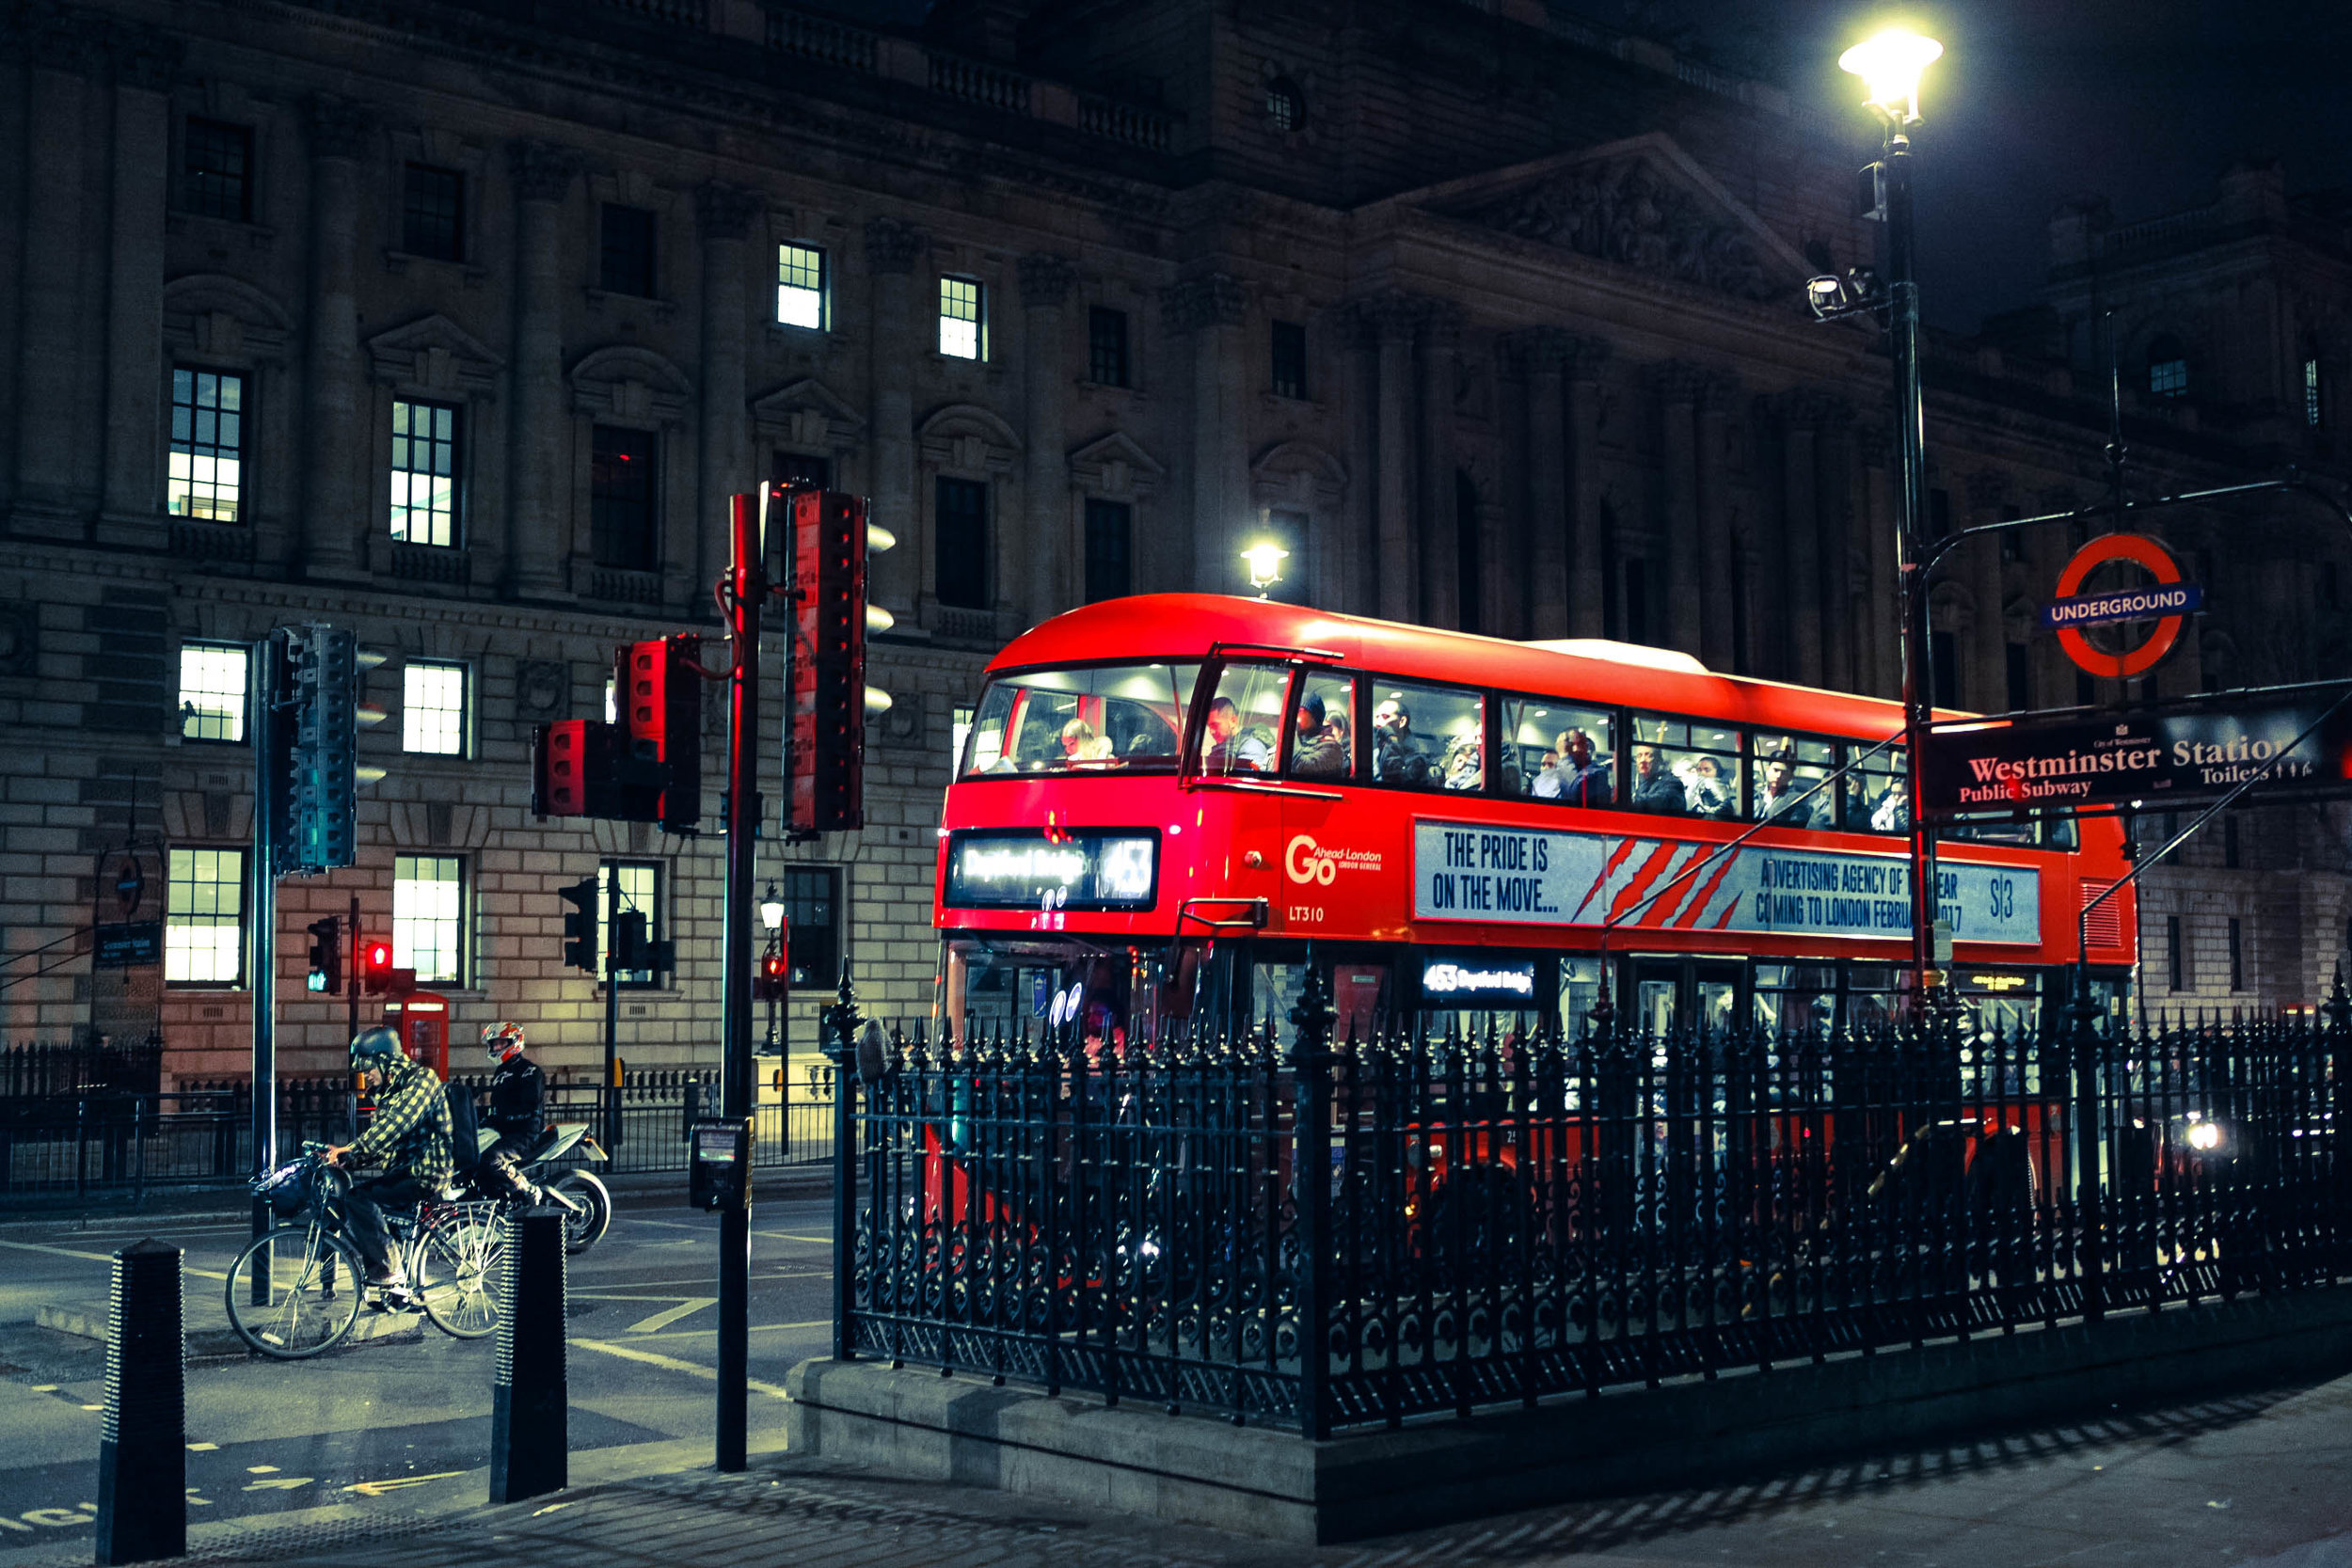 6 HOURS IN LONDON - AND HOW I OVERCOME THE FEAR OF UNKNOWN